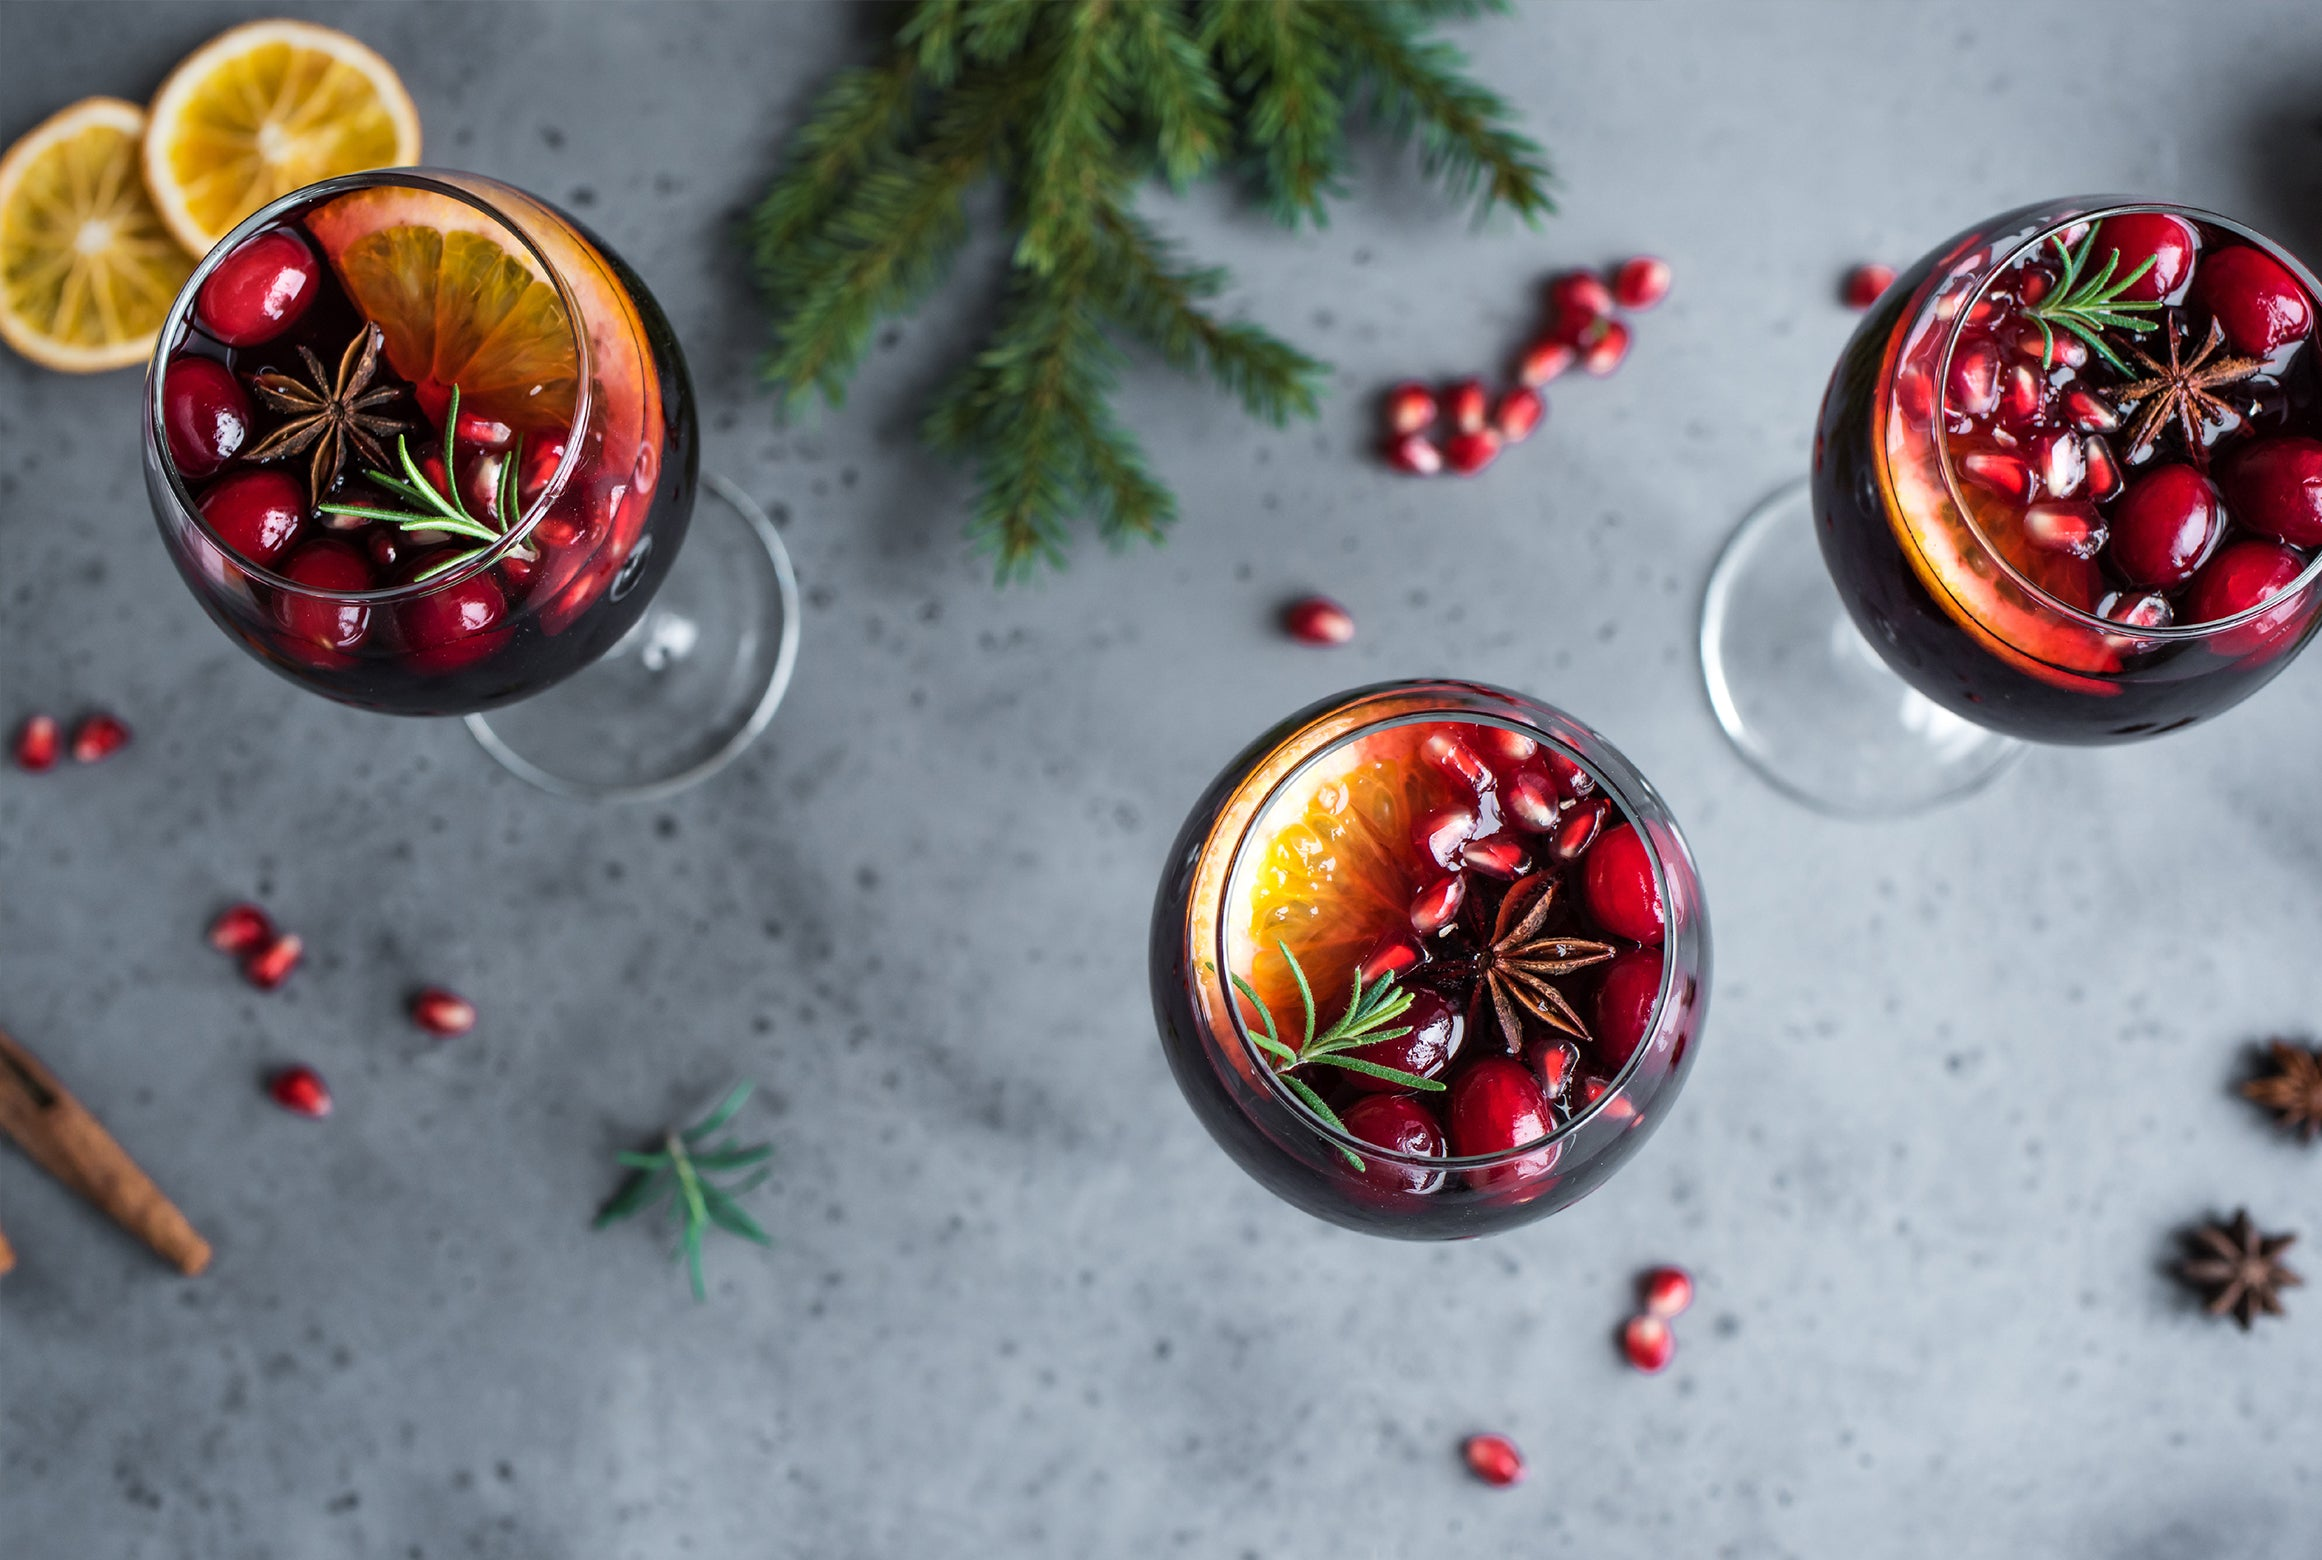 7 Holiday Cocktails to Make Your Spirits Bright